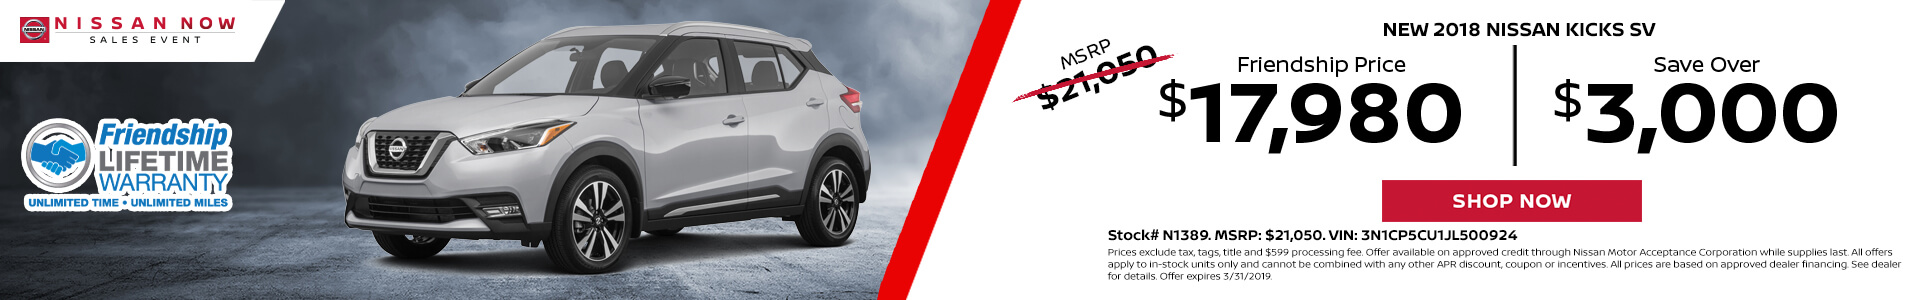 Nissan Kicks $17,980 Purchase